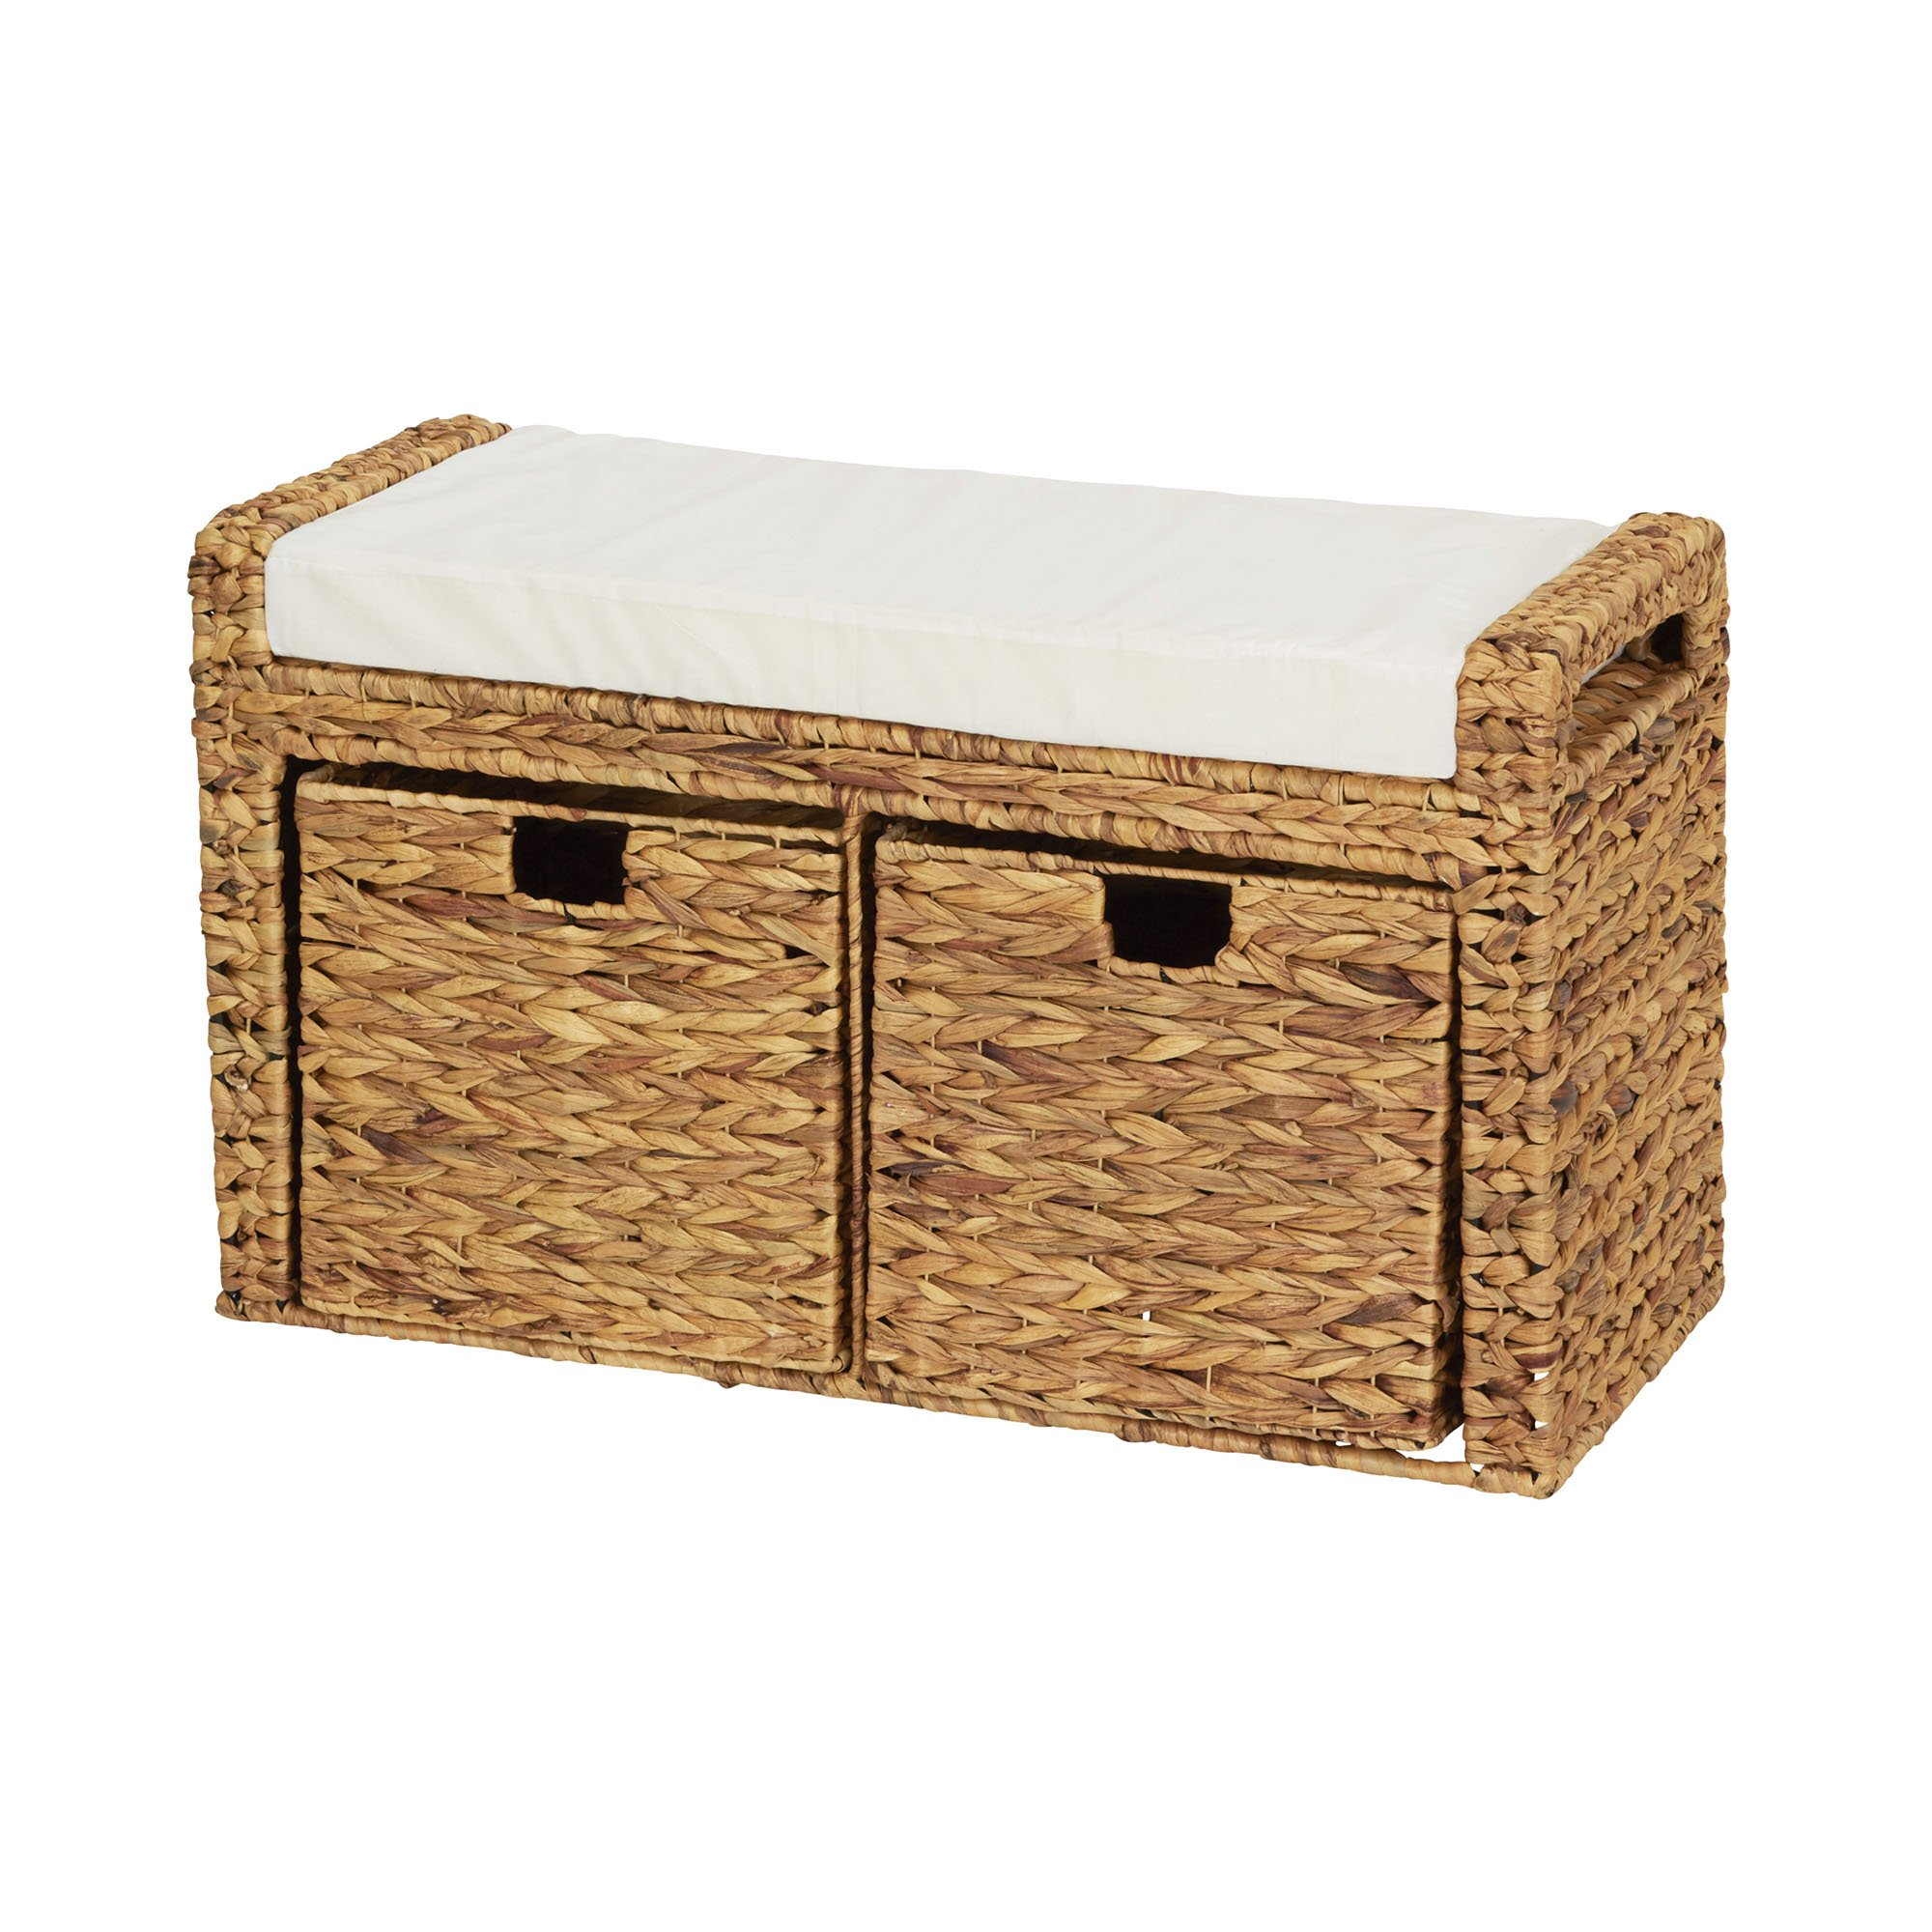 Household Essentials Entryway Wicker Cushioned Storage Bench with Shoe Cubes, Natural